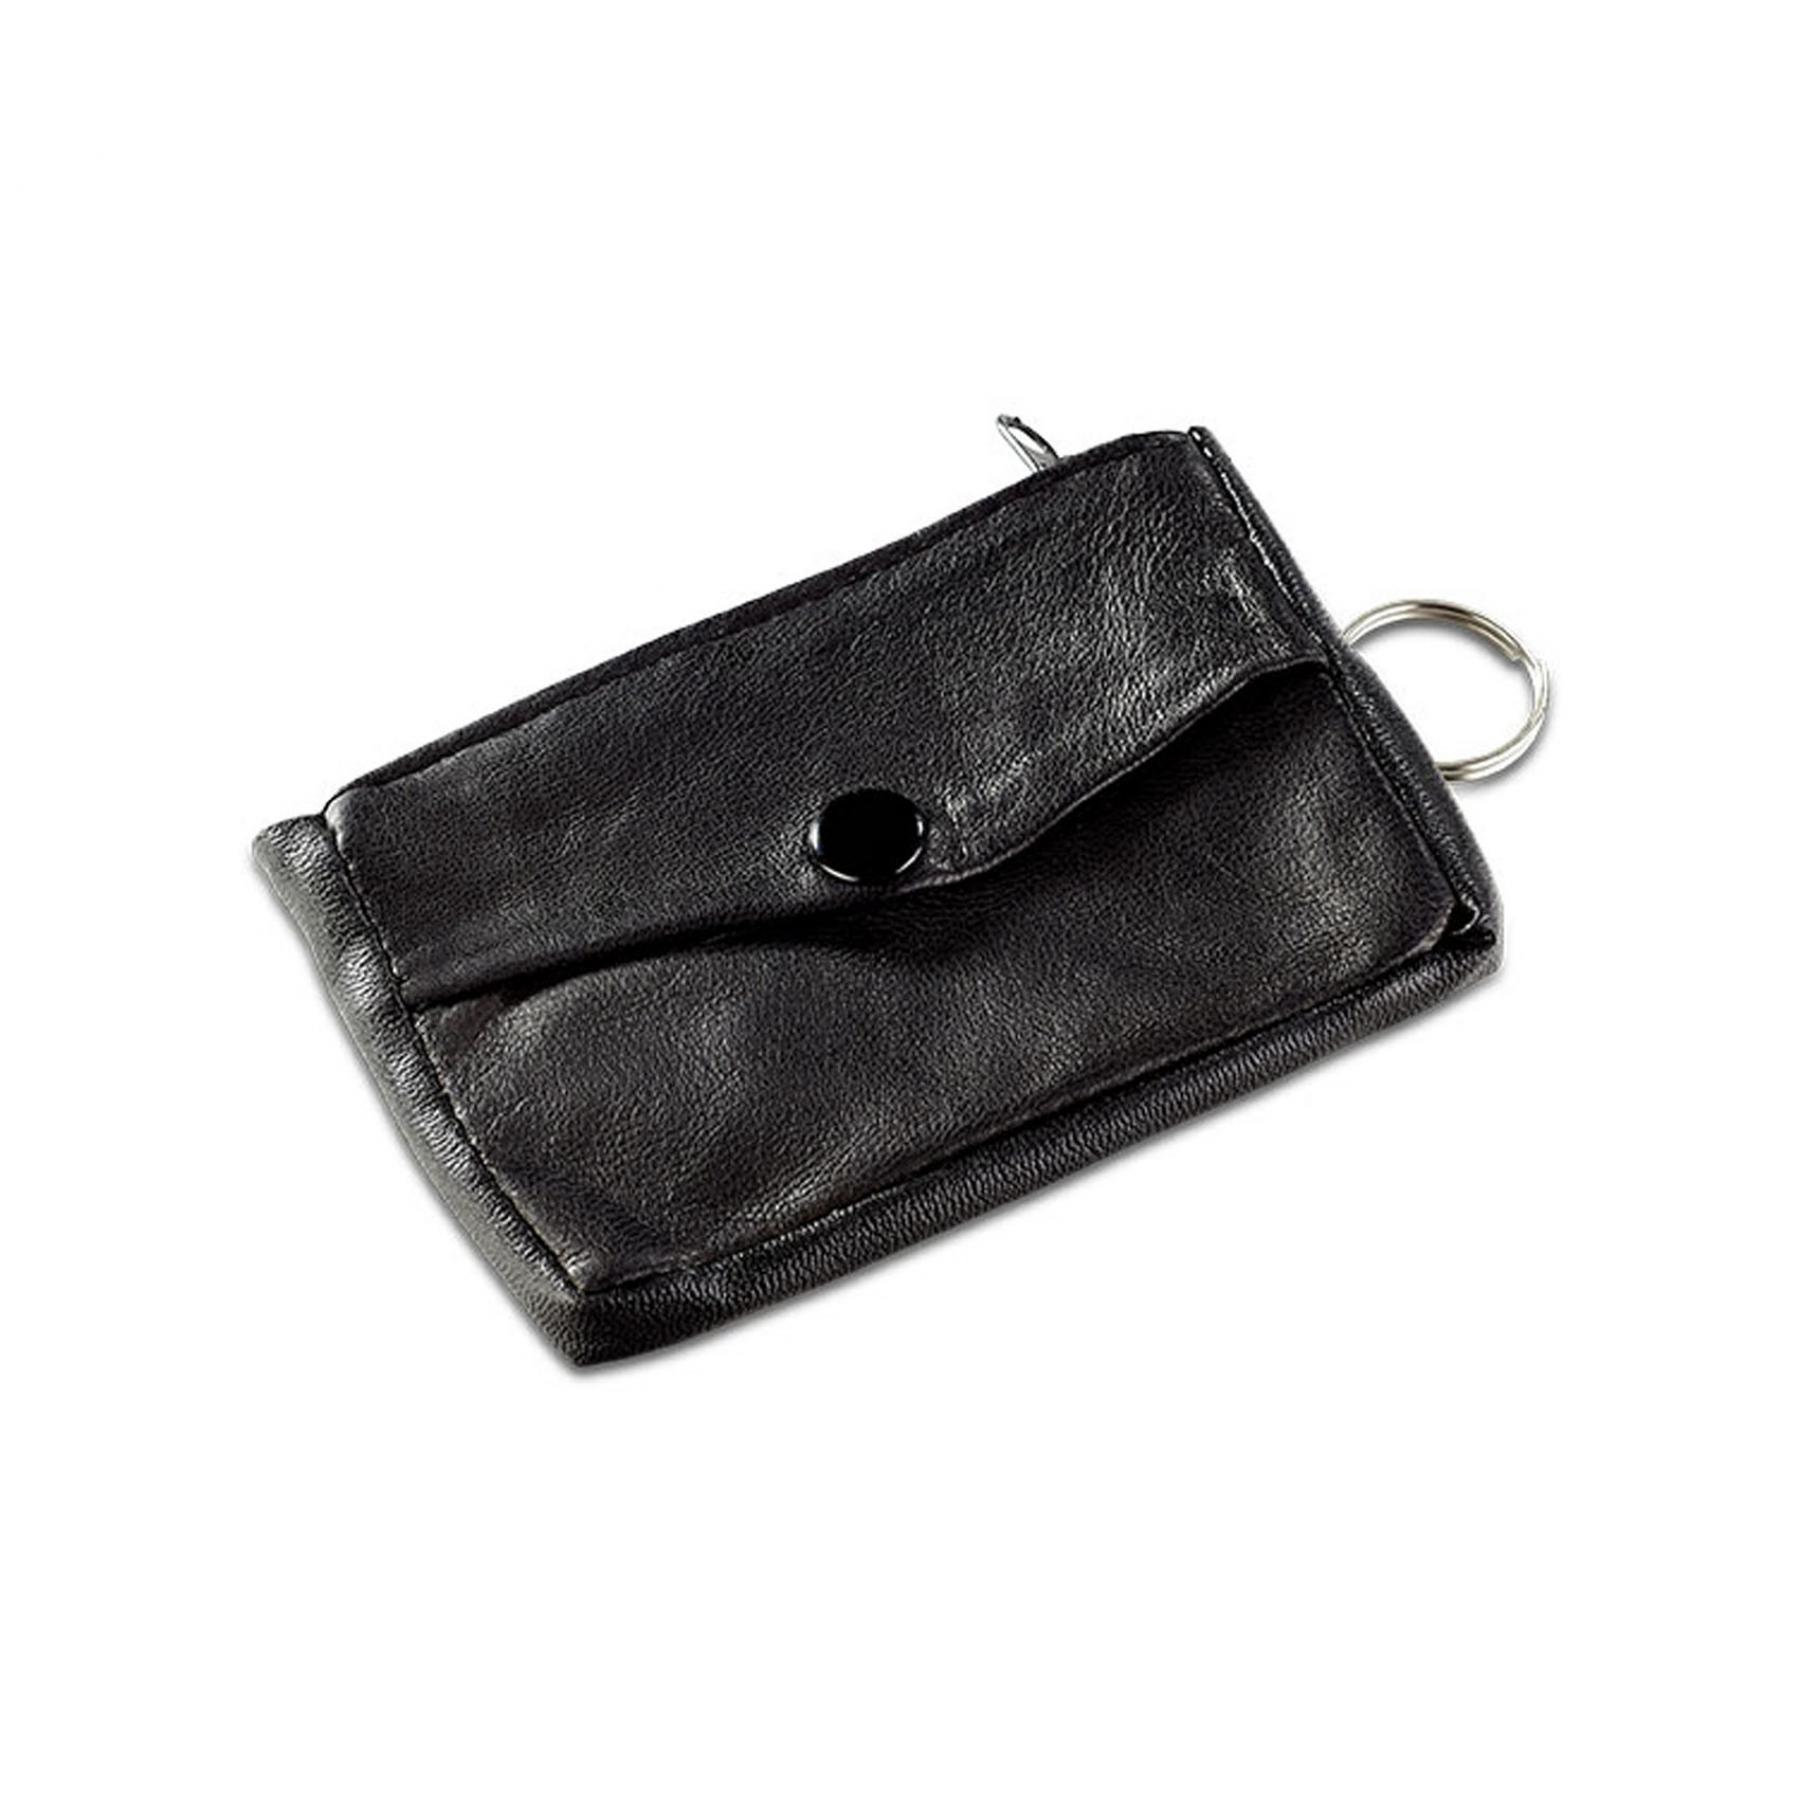 Texas Leather Keypouch